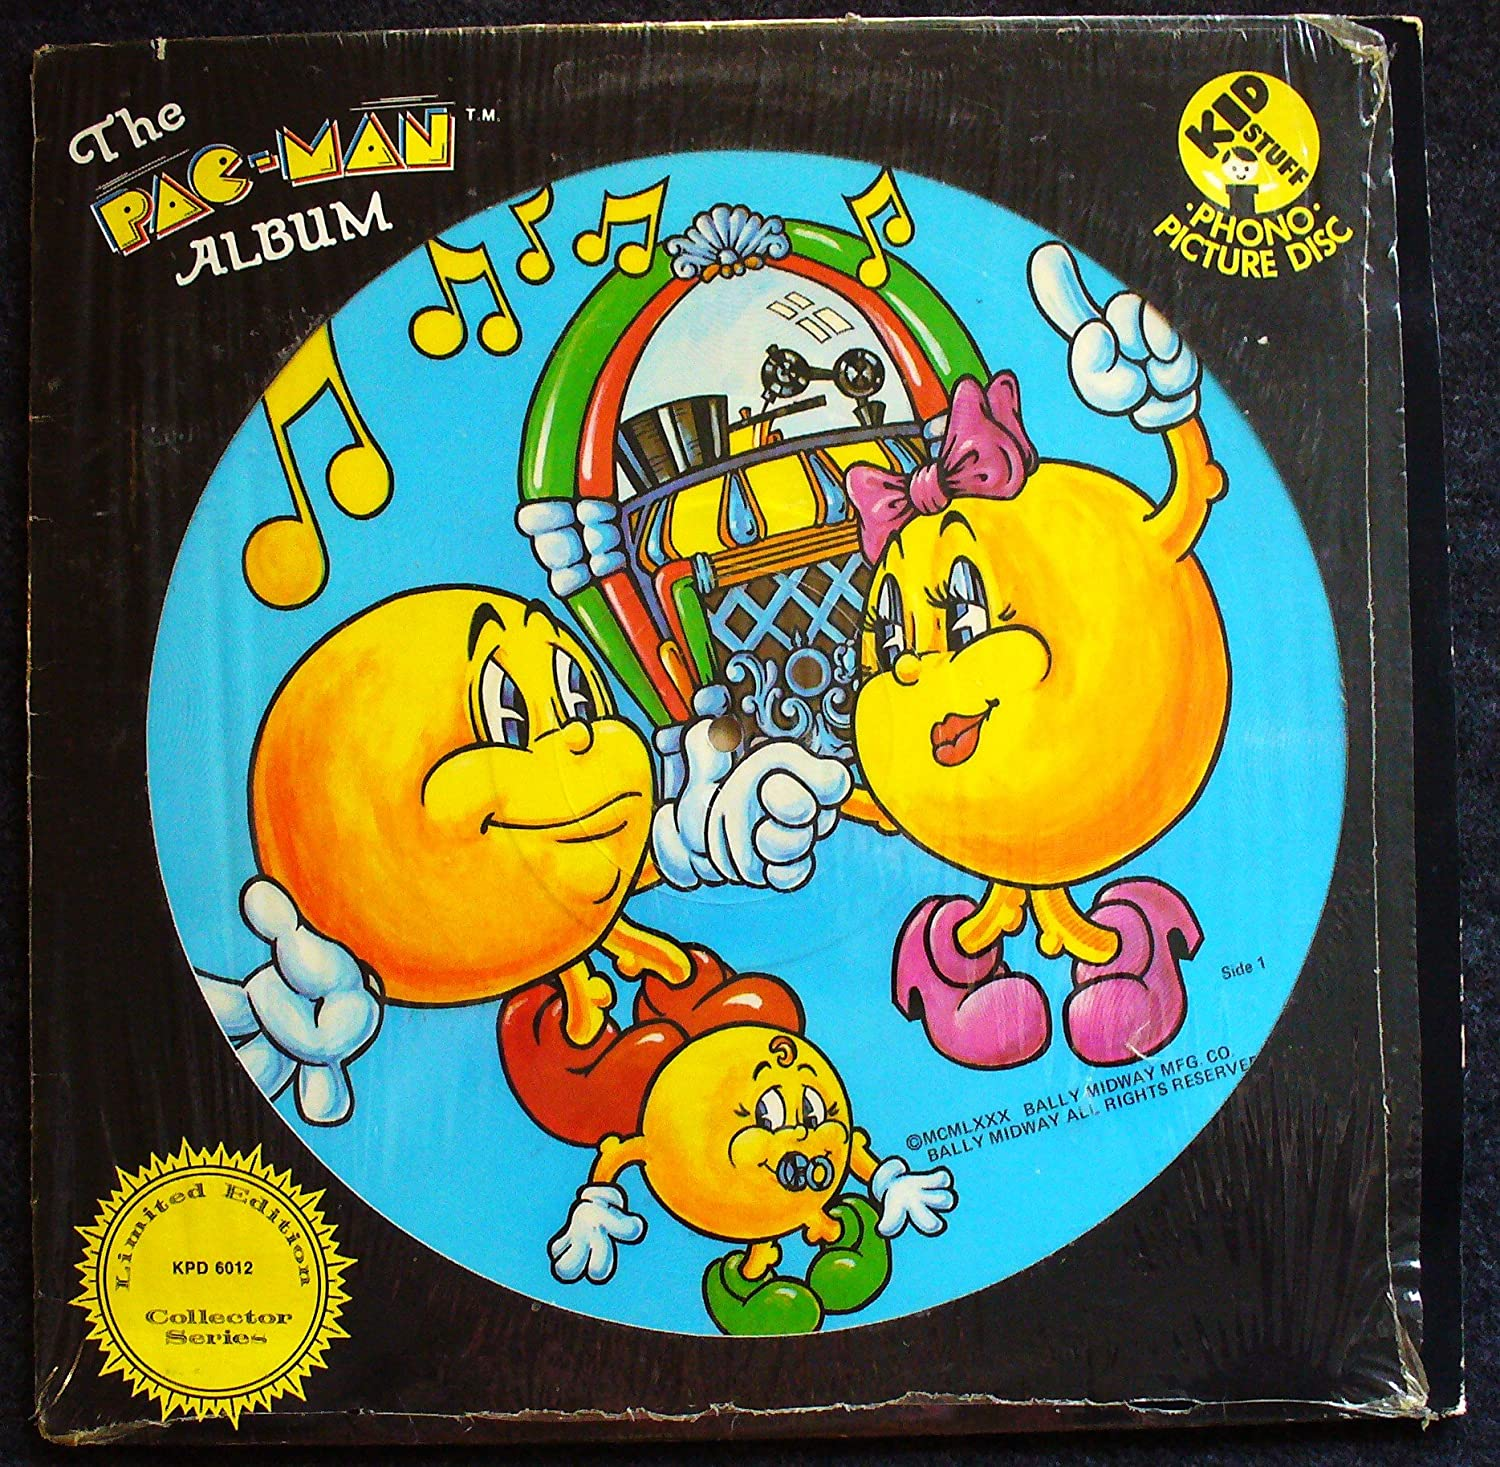 The Pac-Man Album; phono picture disc; ltd ed